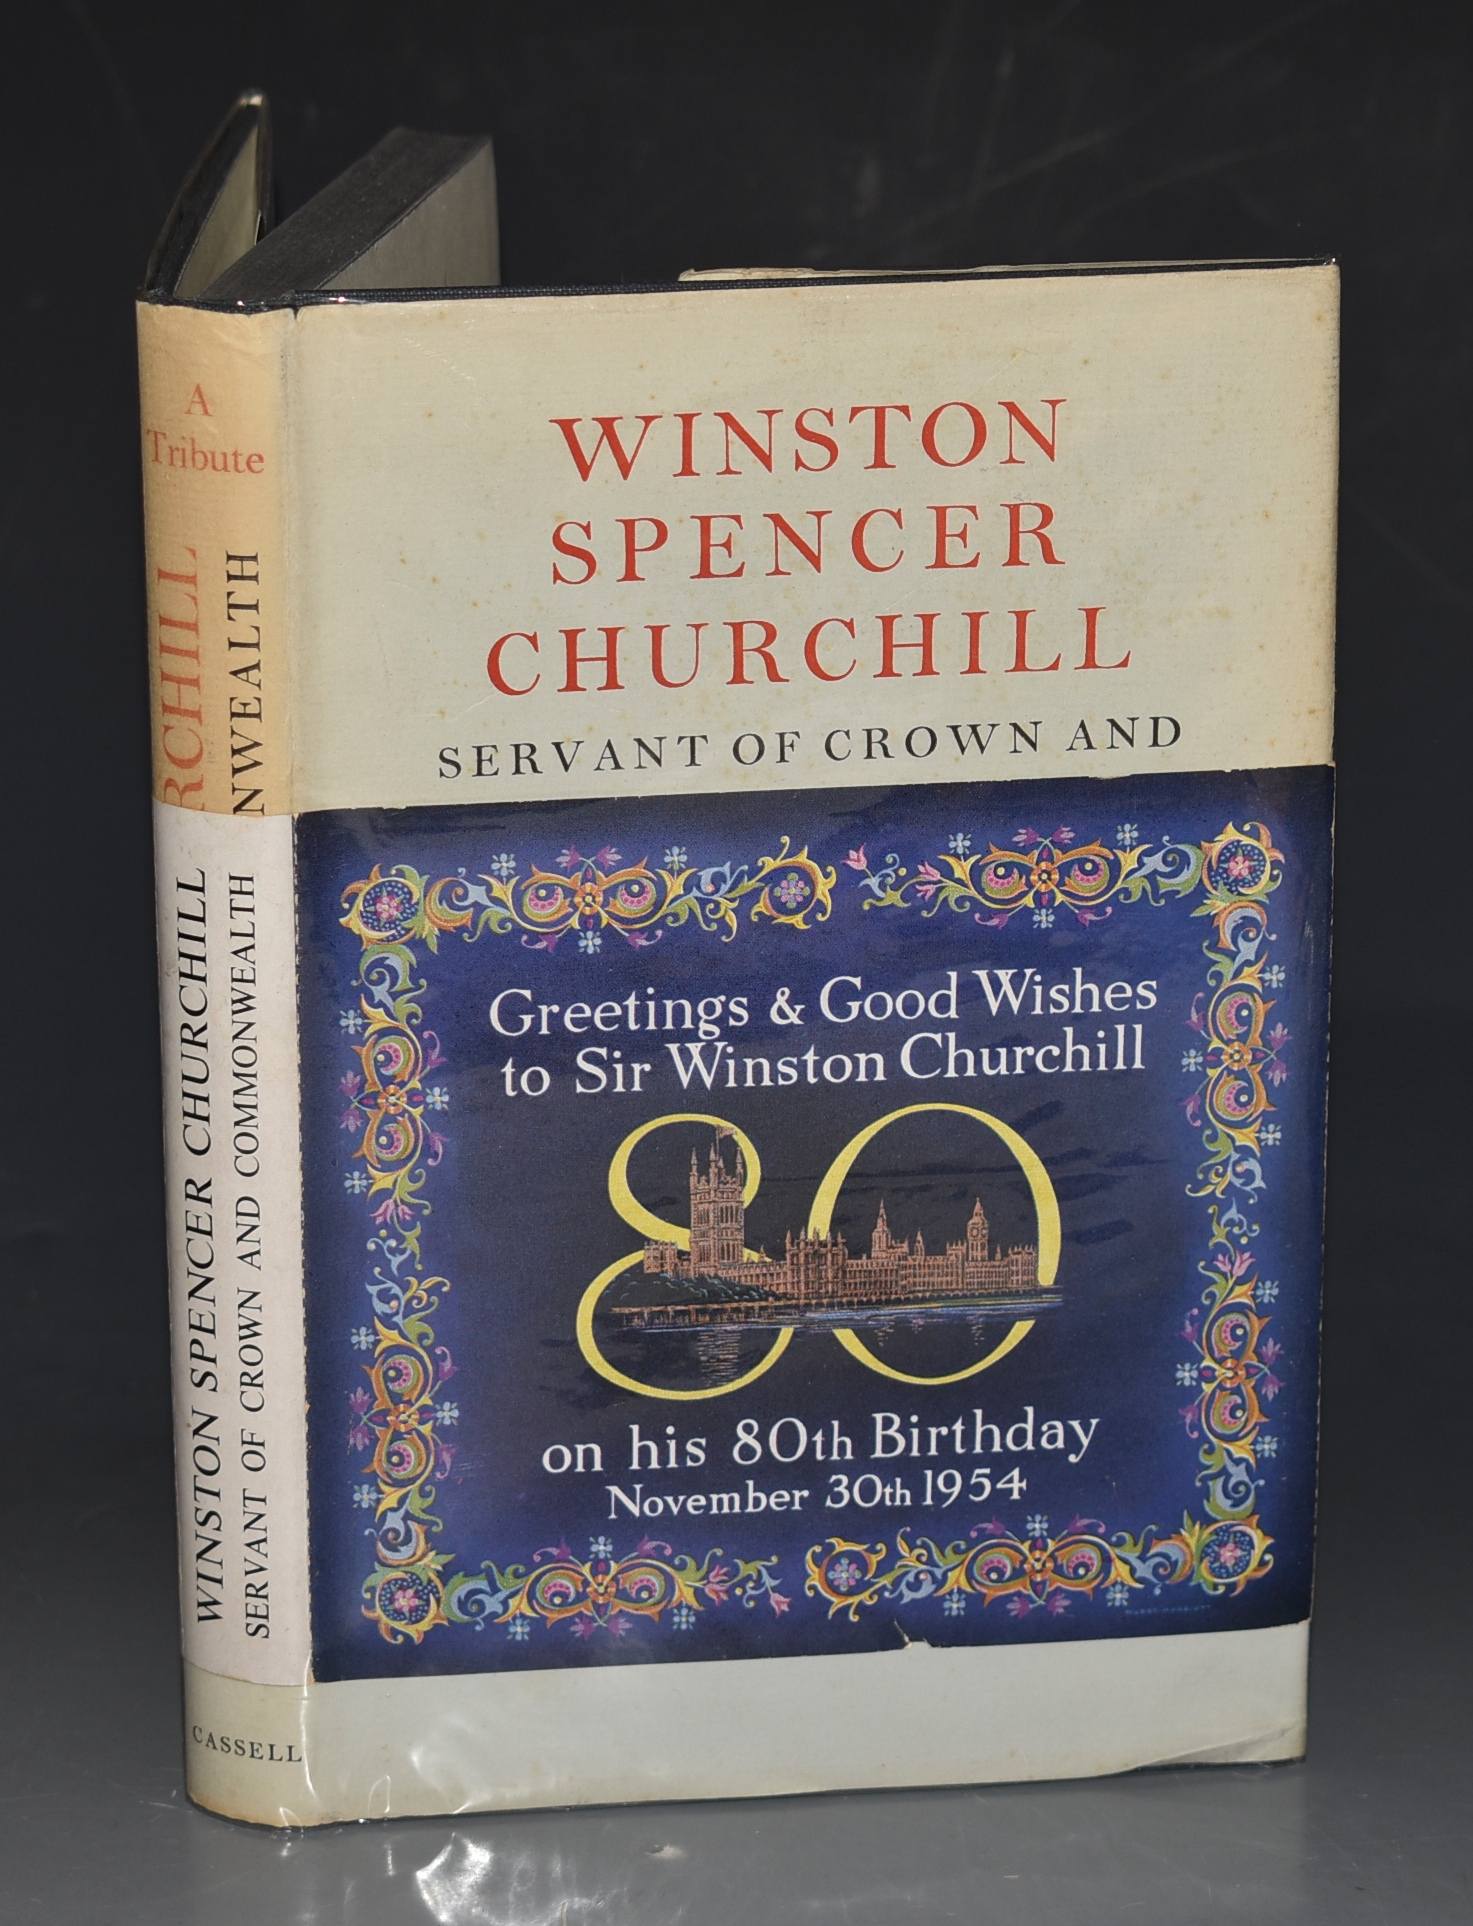 Image for Winston Spencer Churchill: Servant of Crown and Commonwealth. A Tribute by various Hands presented to him on his Eightieth Birthday. Ed.by Sir J.Marchant.